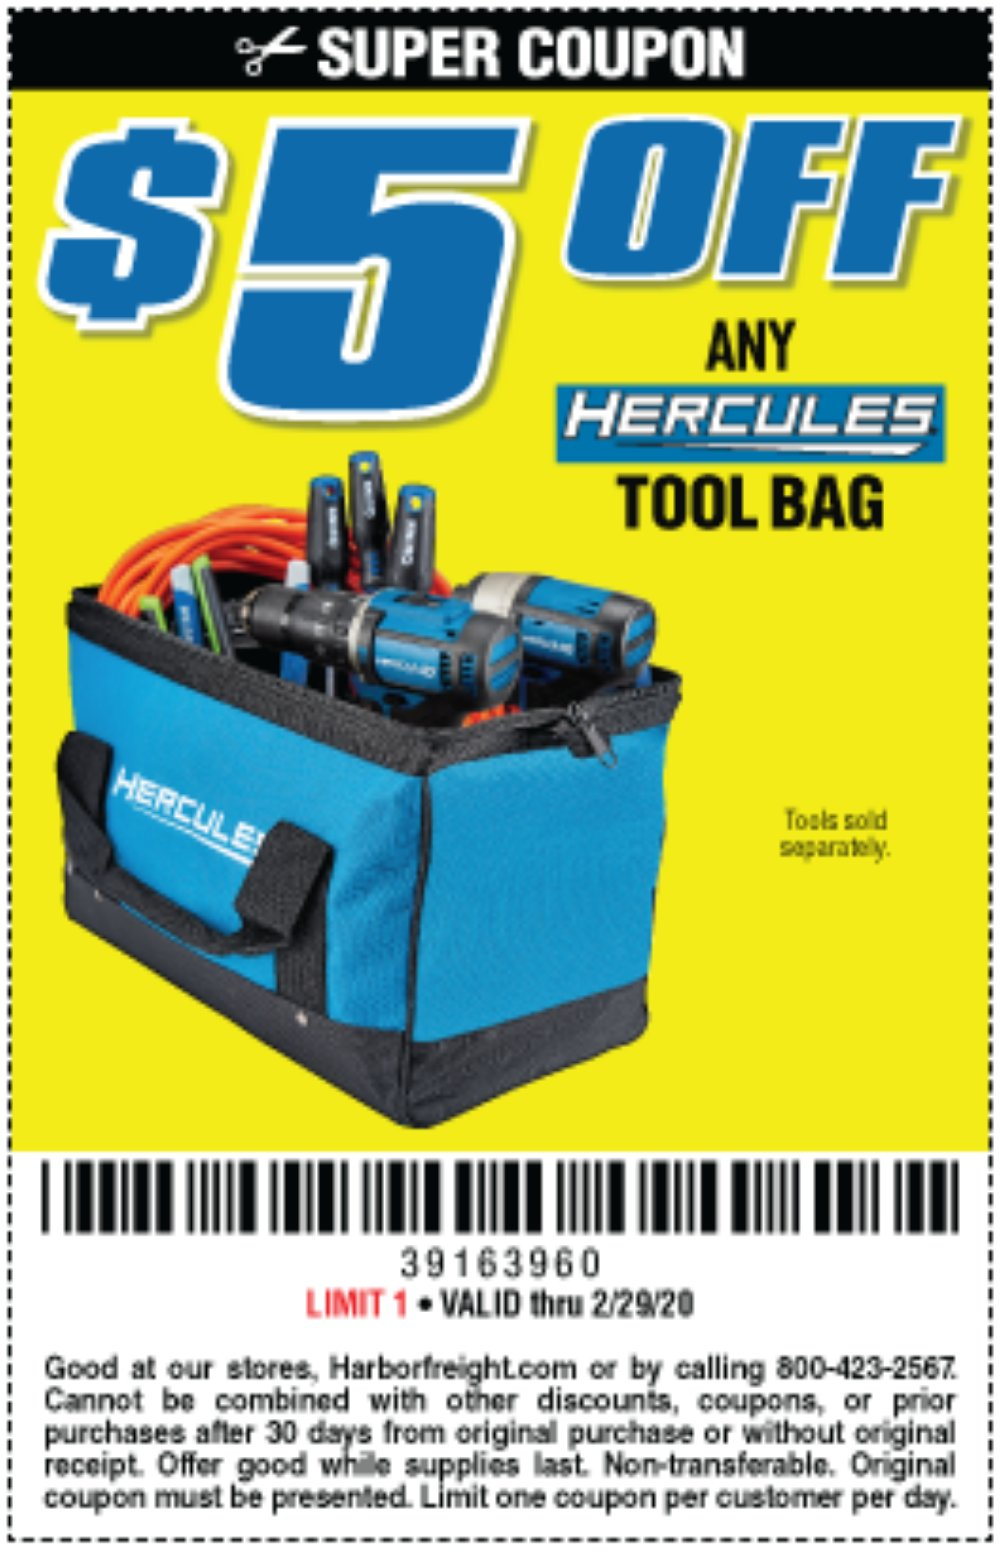 Harbor Freight Coupon, HF Coupons - $5 off any Hercules tool bag